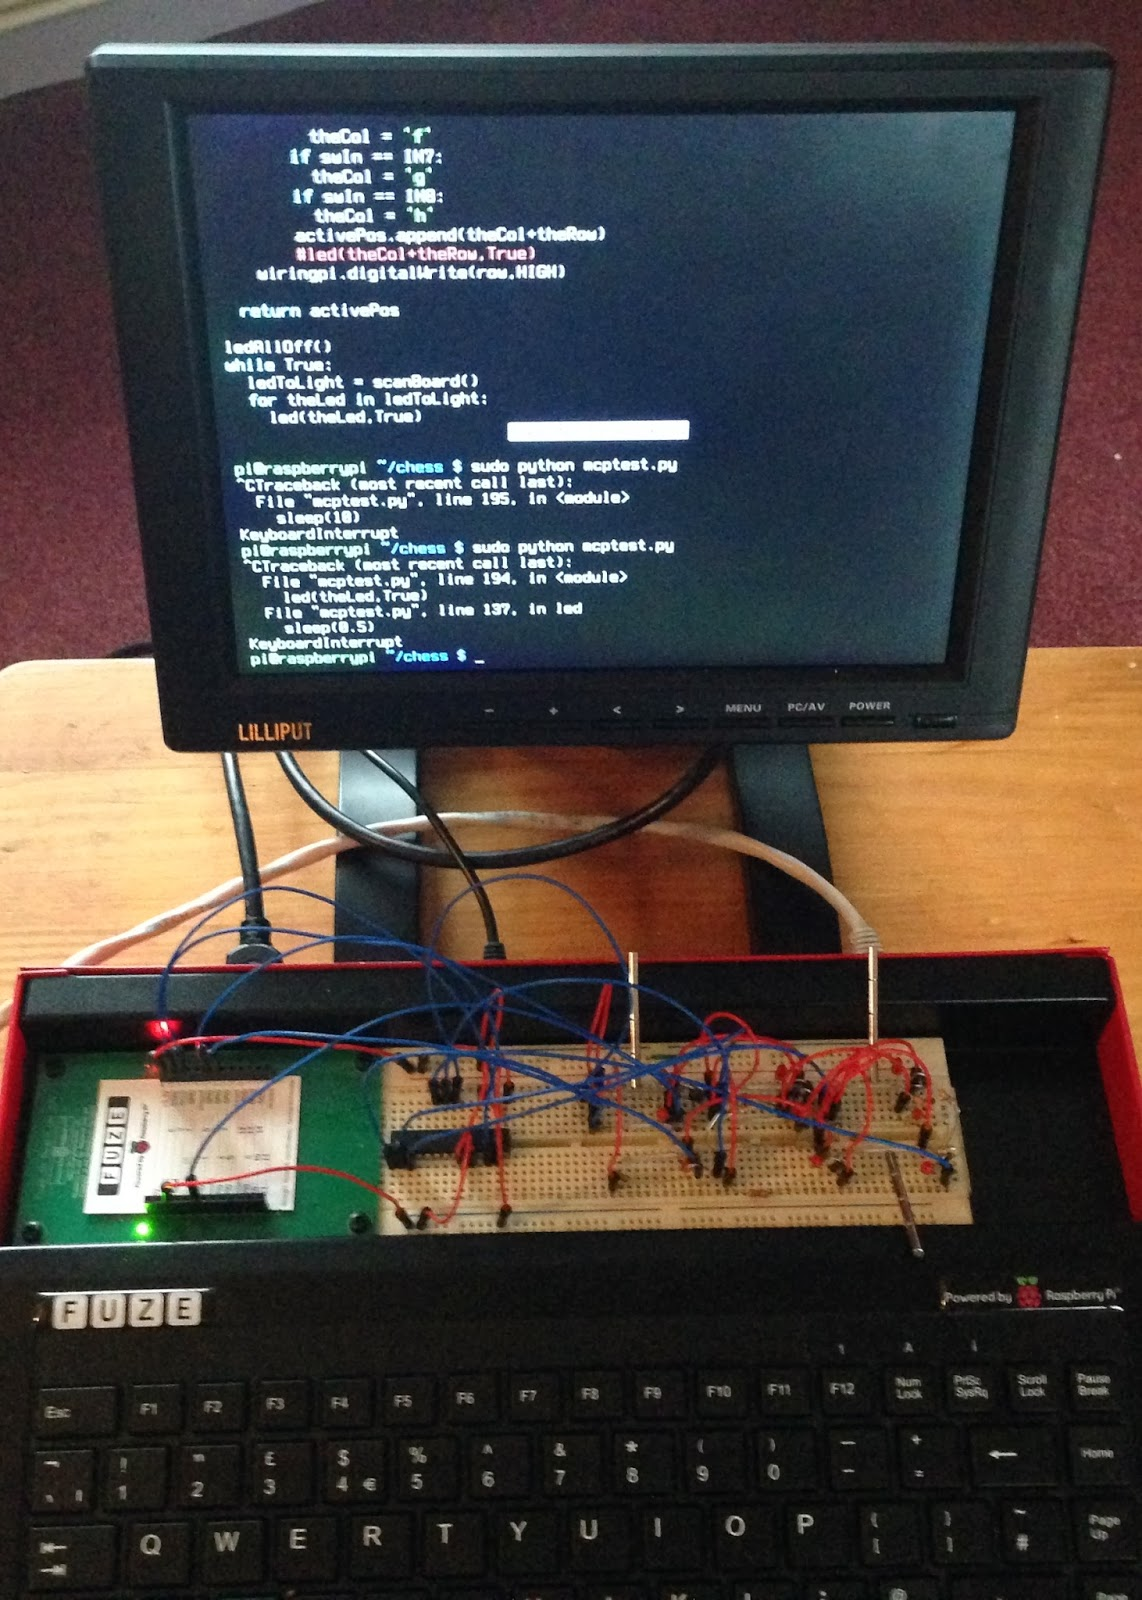 Just Another Day Pi Chess Wiringpi2 Python I2c The Real Breadboard